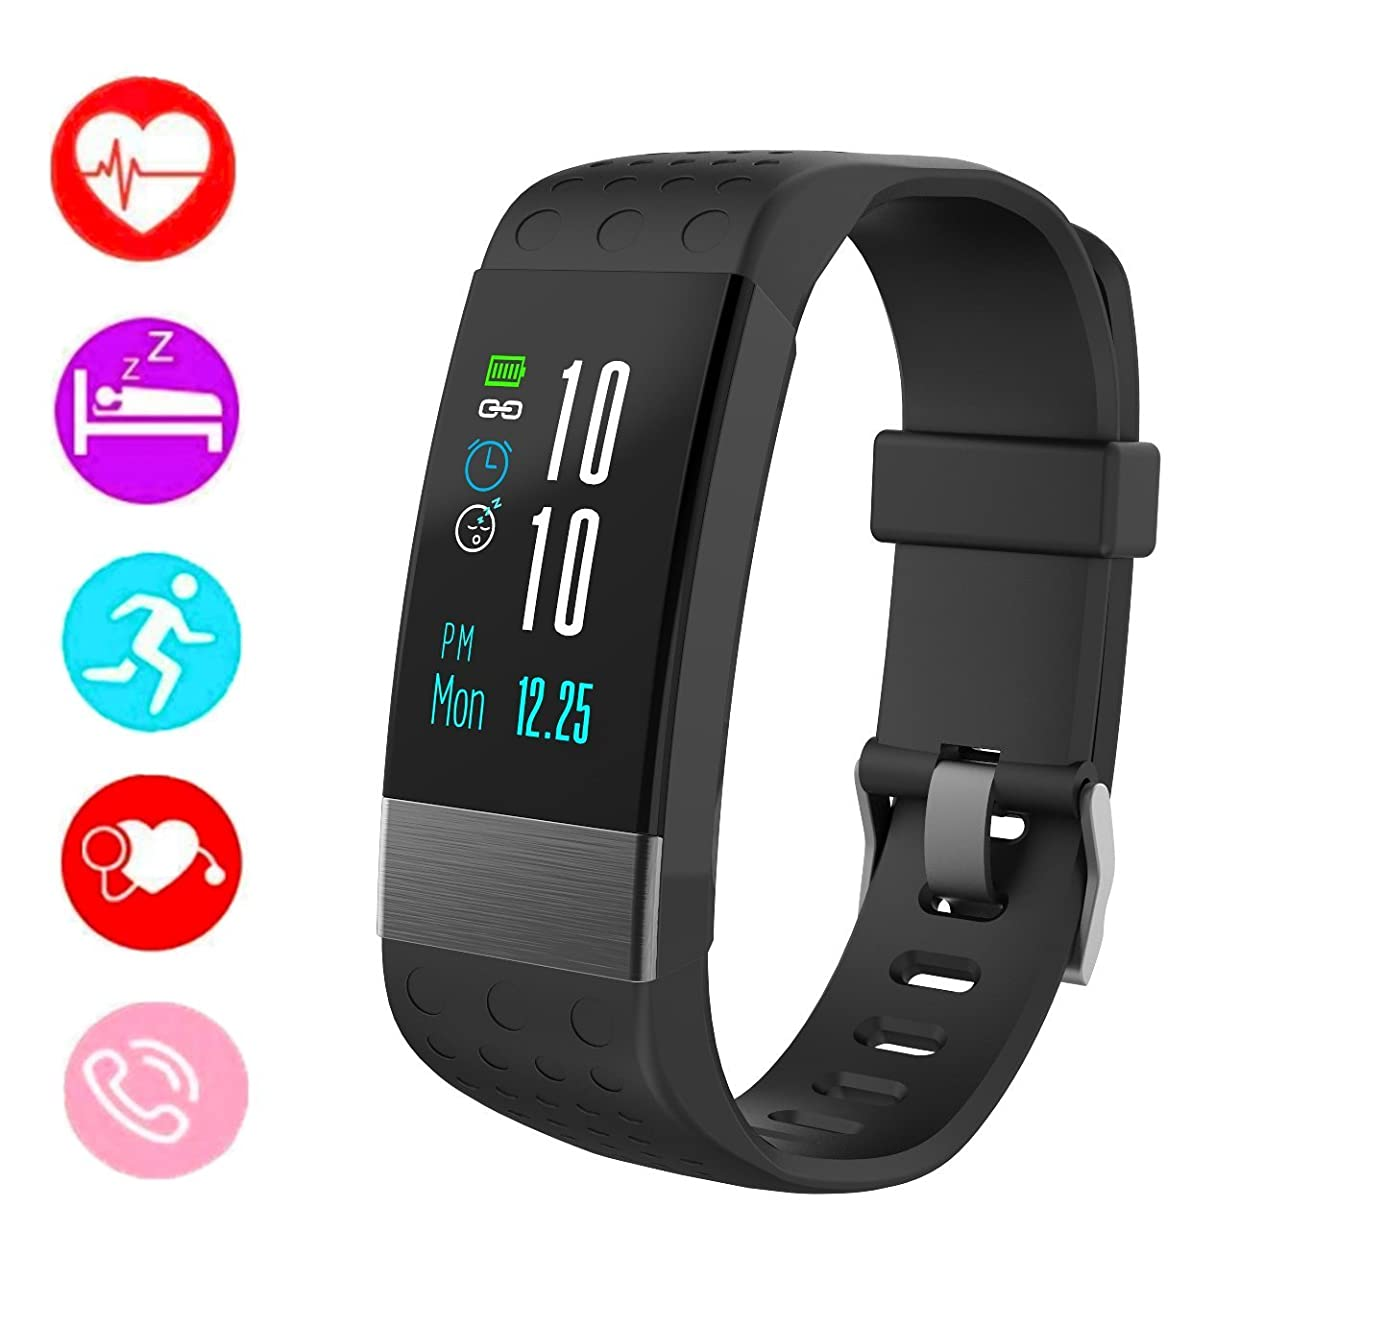 Fitness Tracker Smart Watch Heart Rate Monitor I7 Activity Trackers Bluetooth with Blood Pressure Monitor Smart Watches Compatible with iOS Samsung Android Phones (Black)